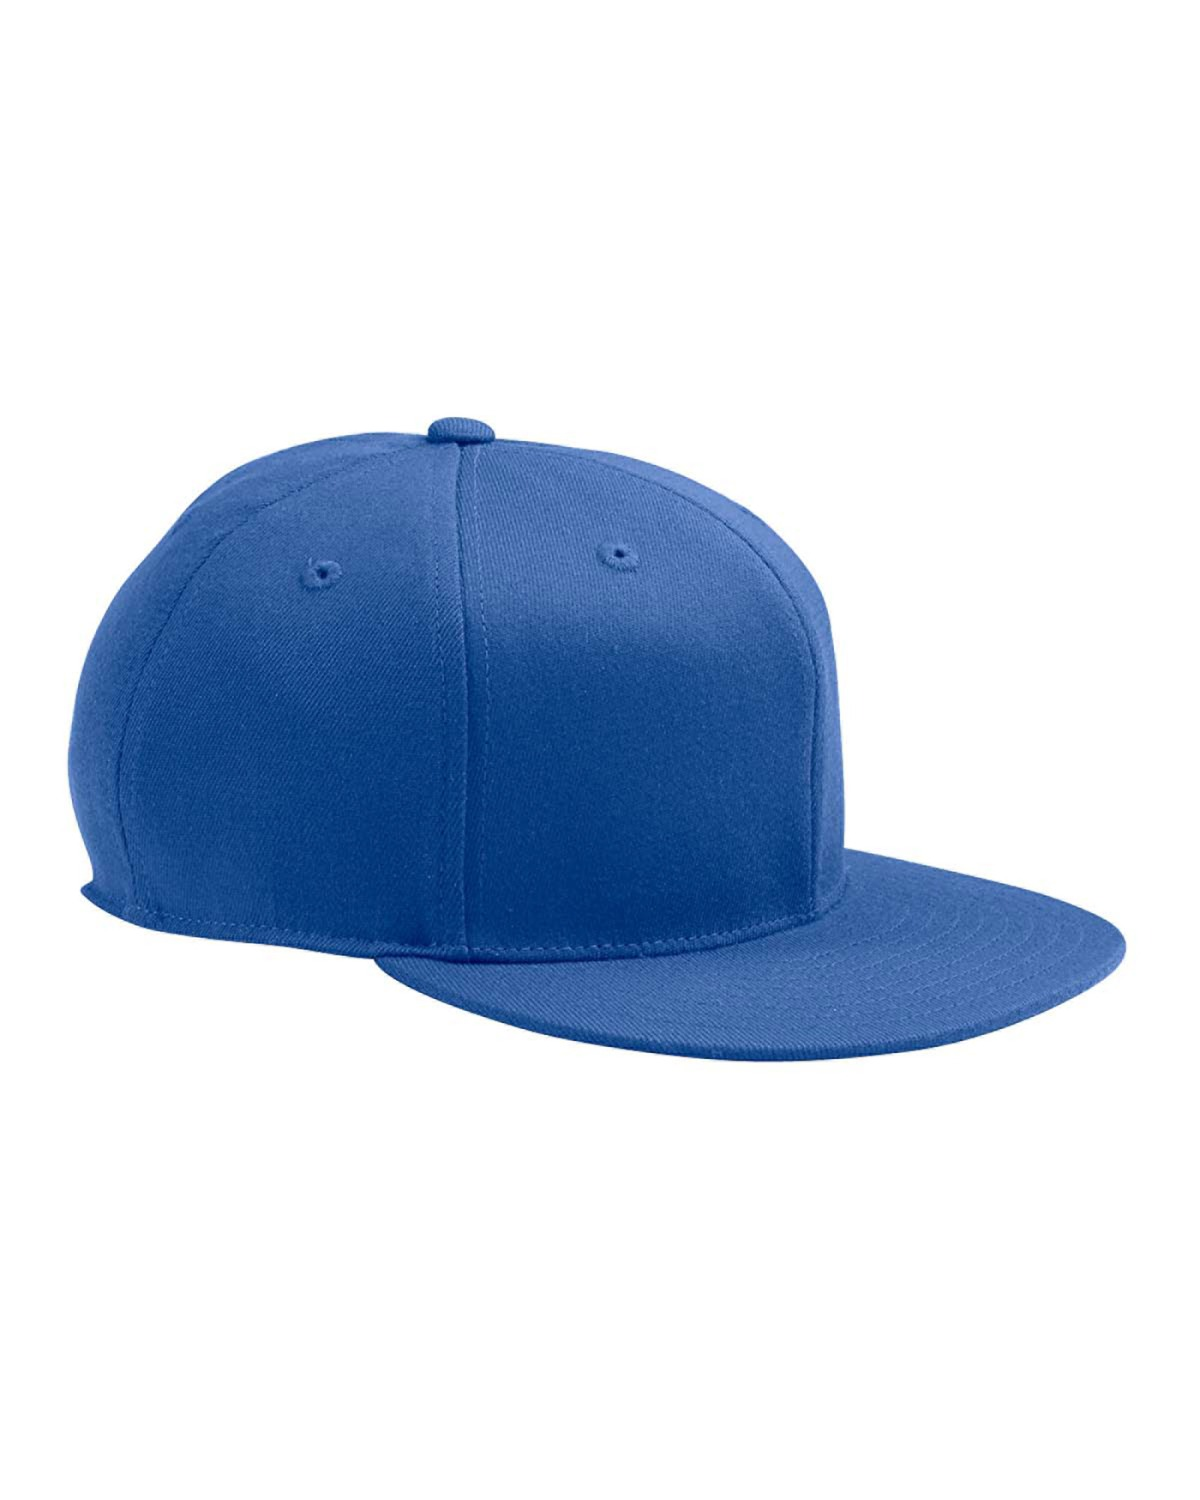 KC Caps 6210 Lightweight Twill Cap